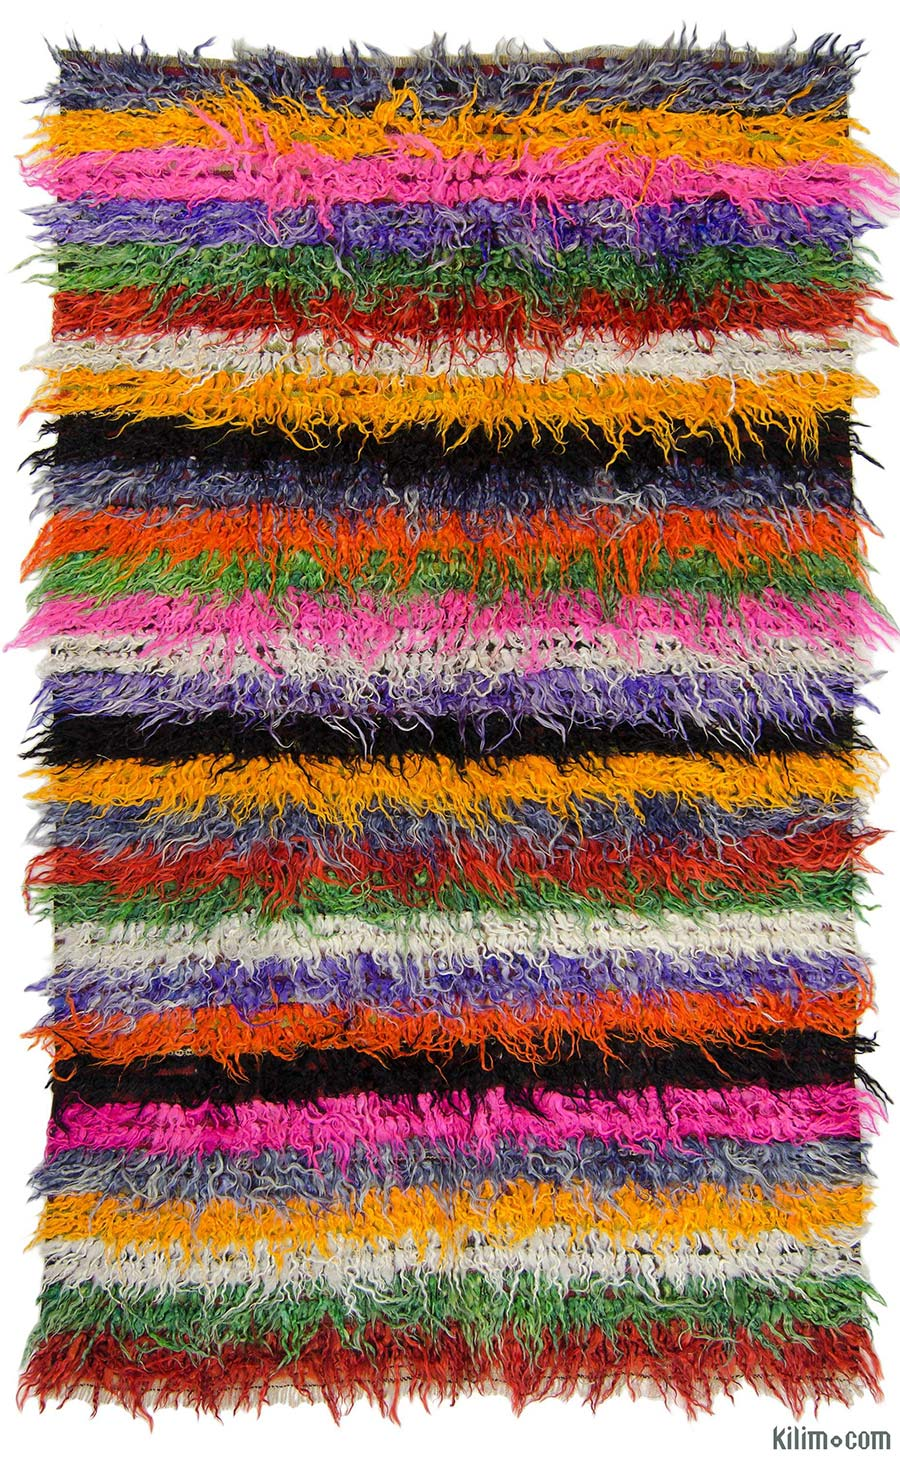 Tulu Rugs The Source For Hand Knotted Wool Vintage Rugs